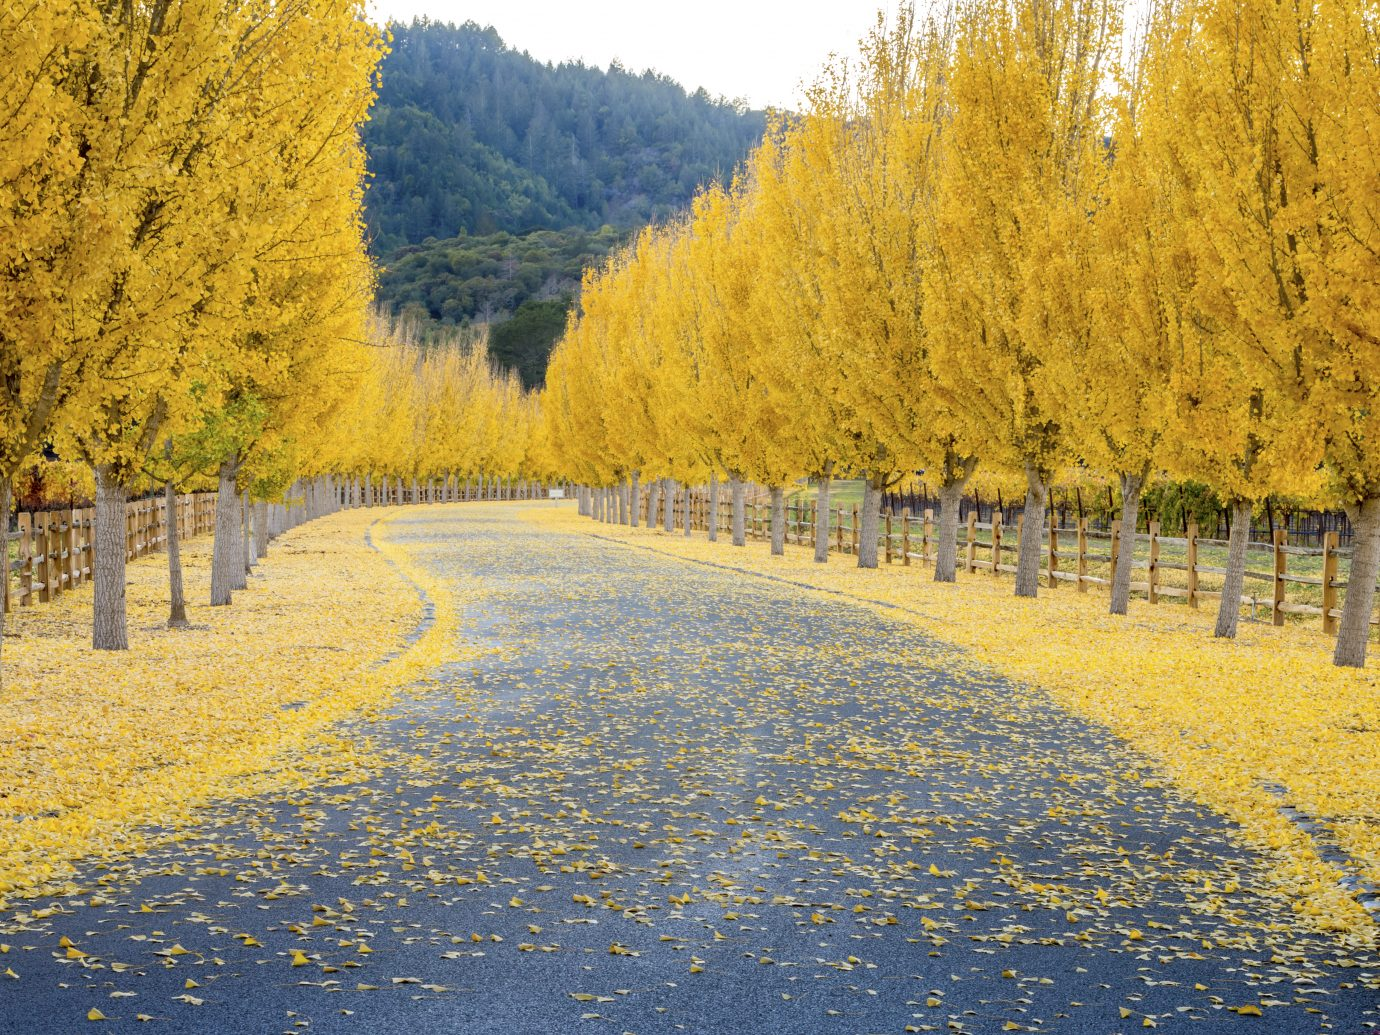 Street through a wine vineyard in the autumn in Napa USA